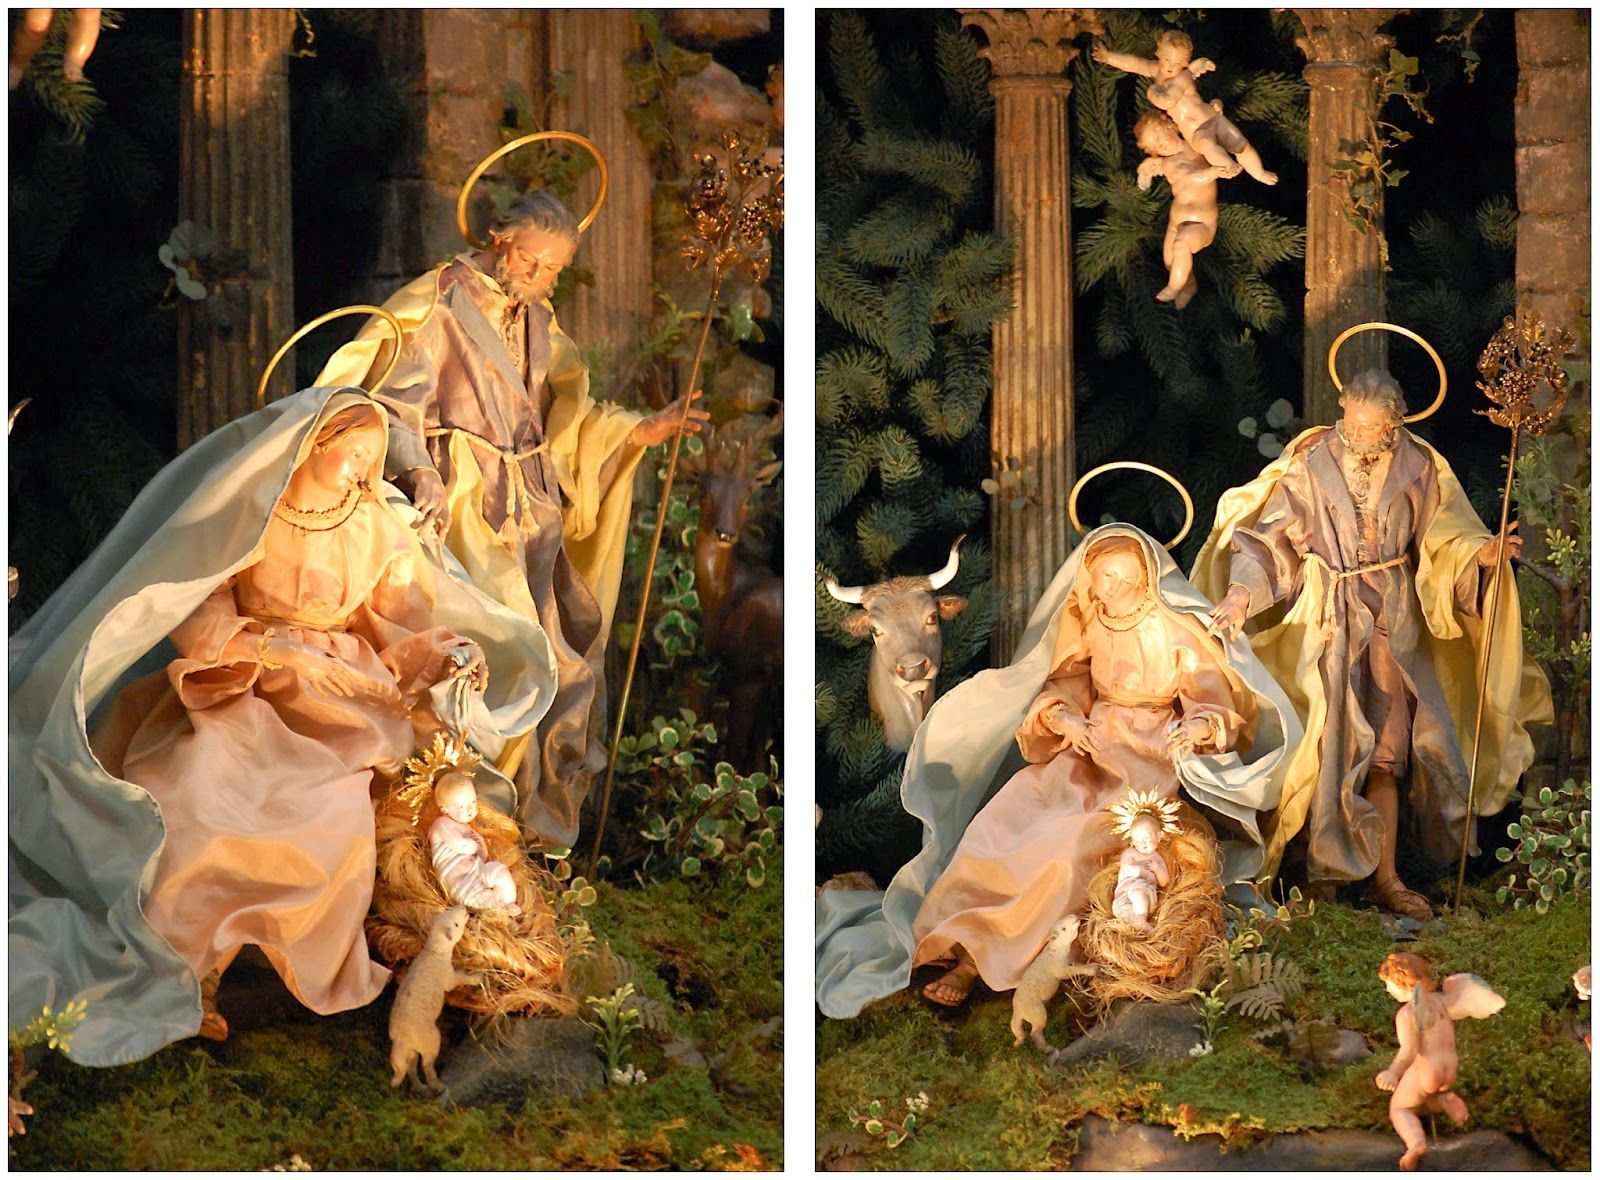 Il Regno: A Look at the Metropolitan Museum of Art's Annual Angel Tree and Neapolitan Baroque ...